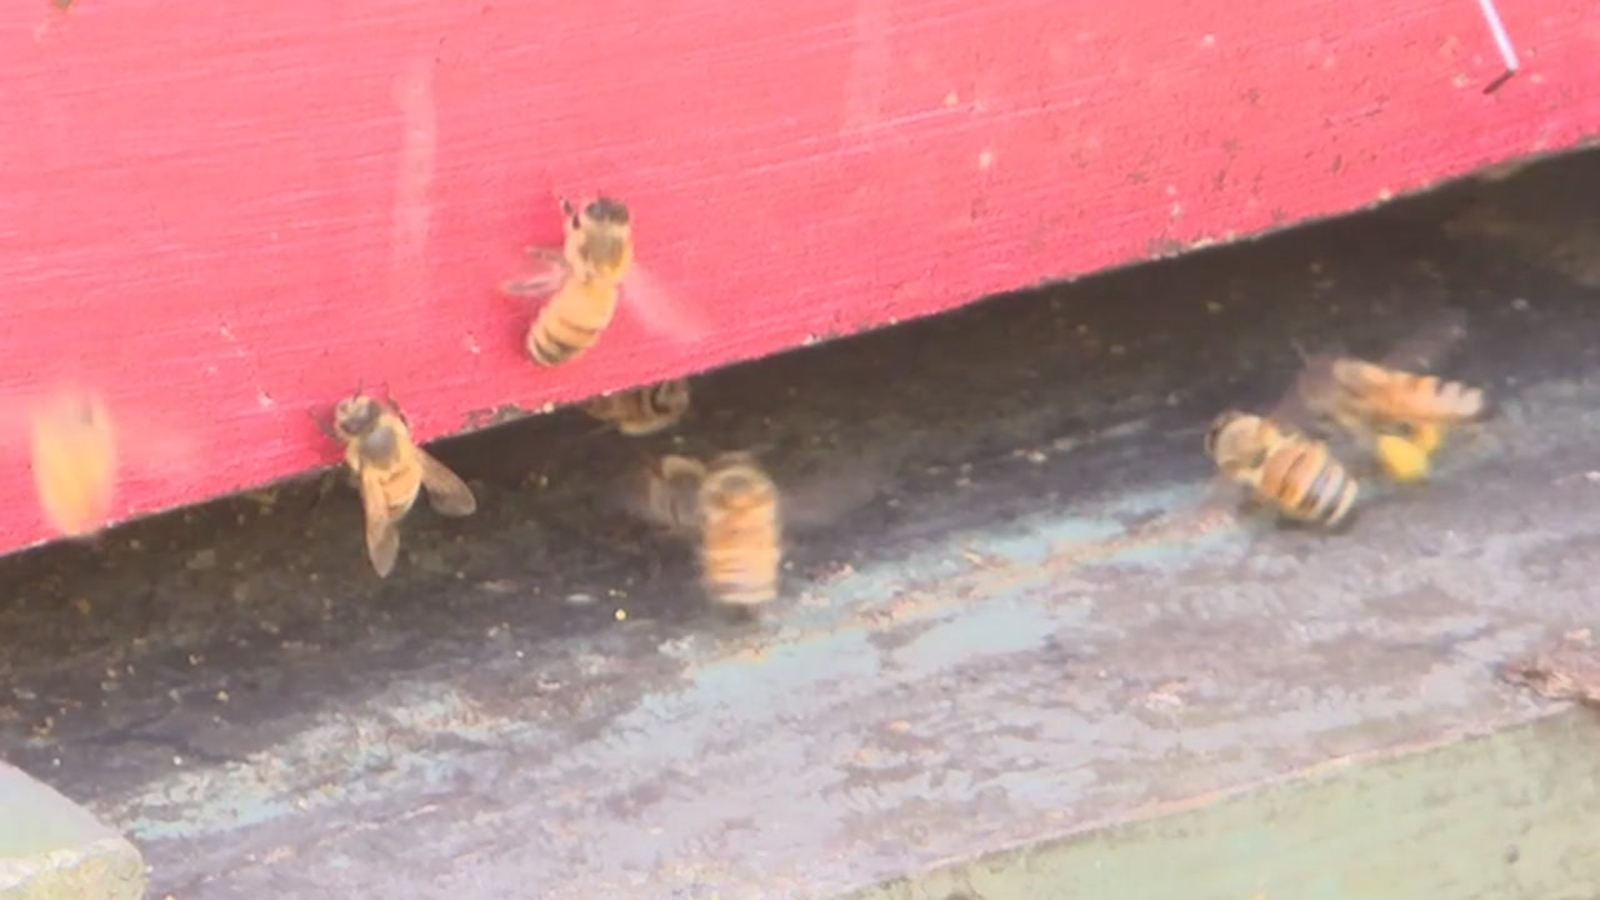 Honey bee crisis: How a $2M investment at NC State could save apples, blueberries, melons, peaches, and more